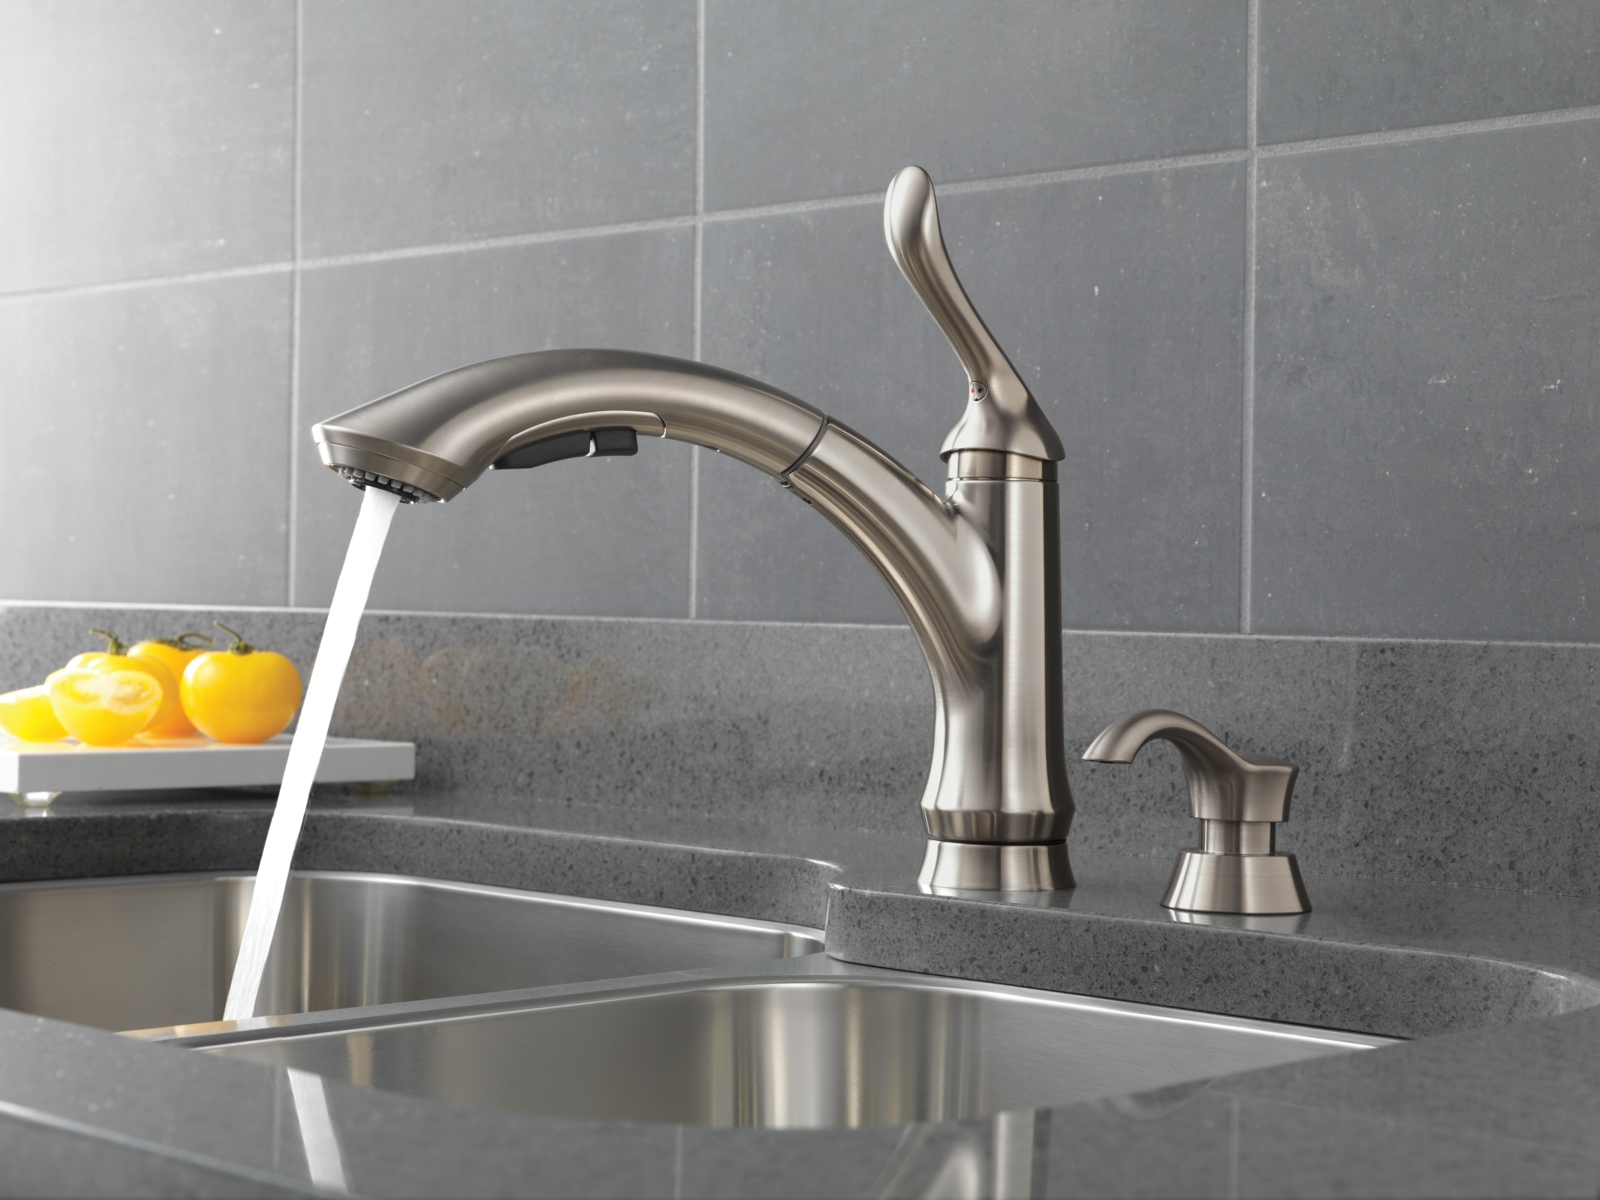 Ideas, delta utility room faucets delta utility room faucets linden kitchen collection 1600 x 1200  .